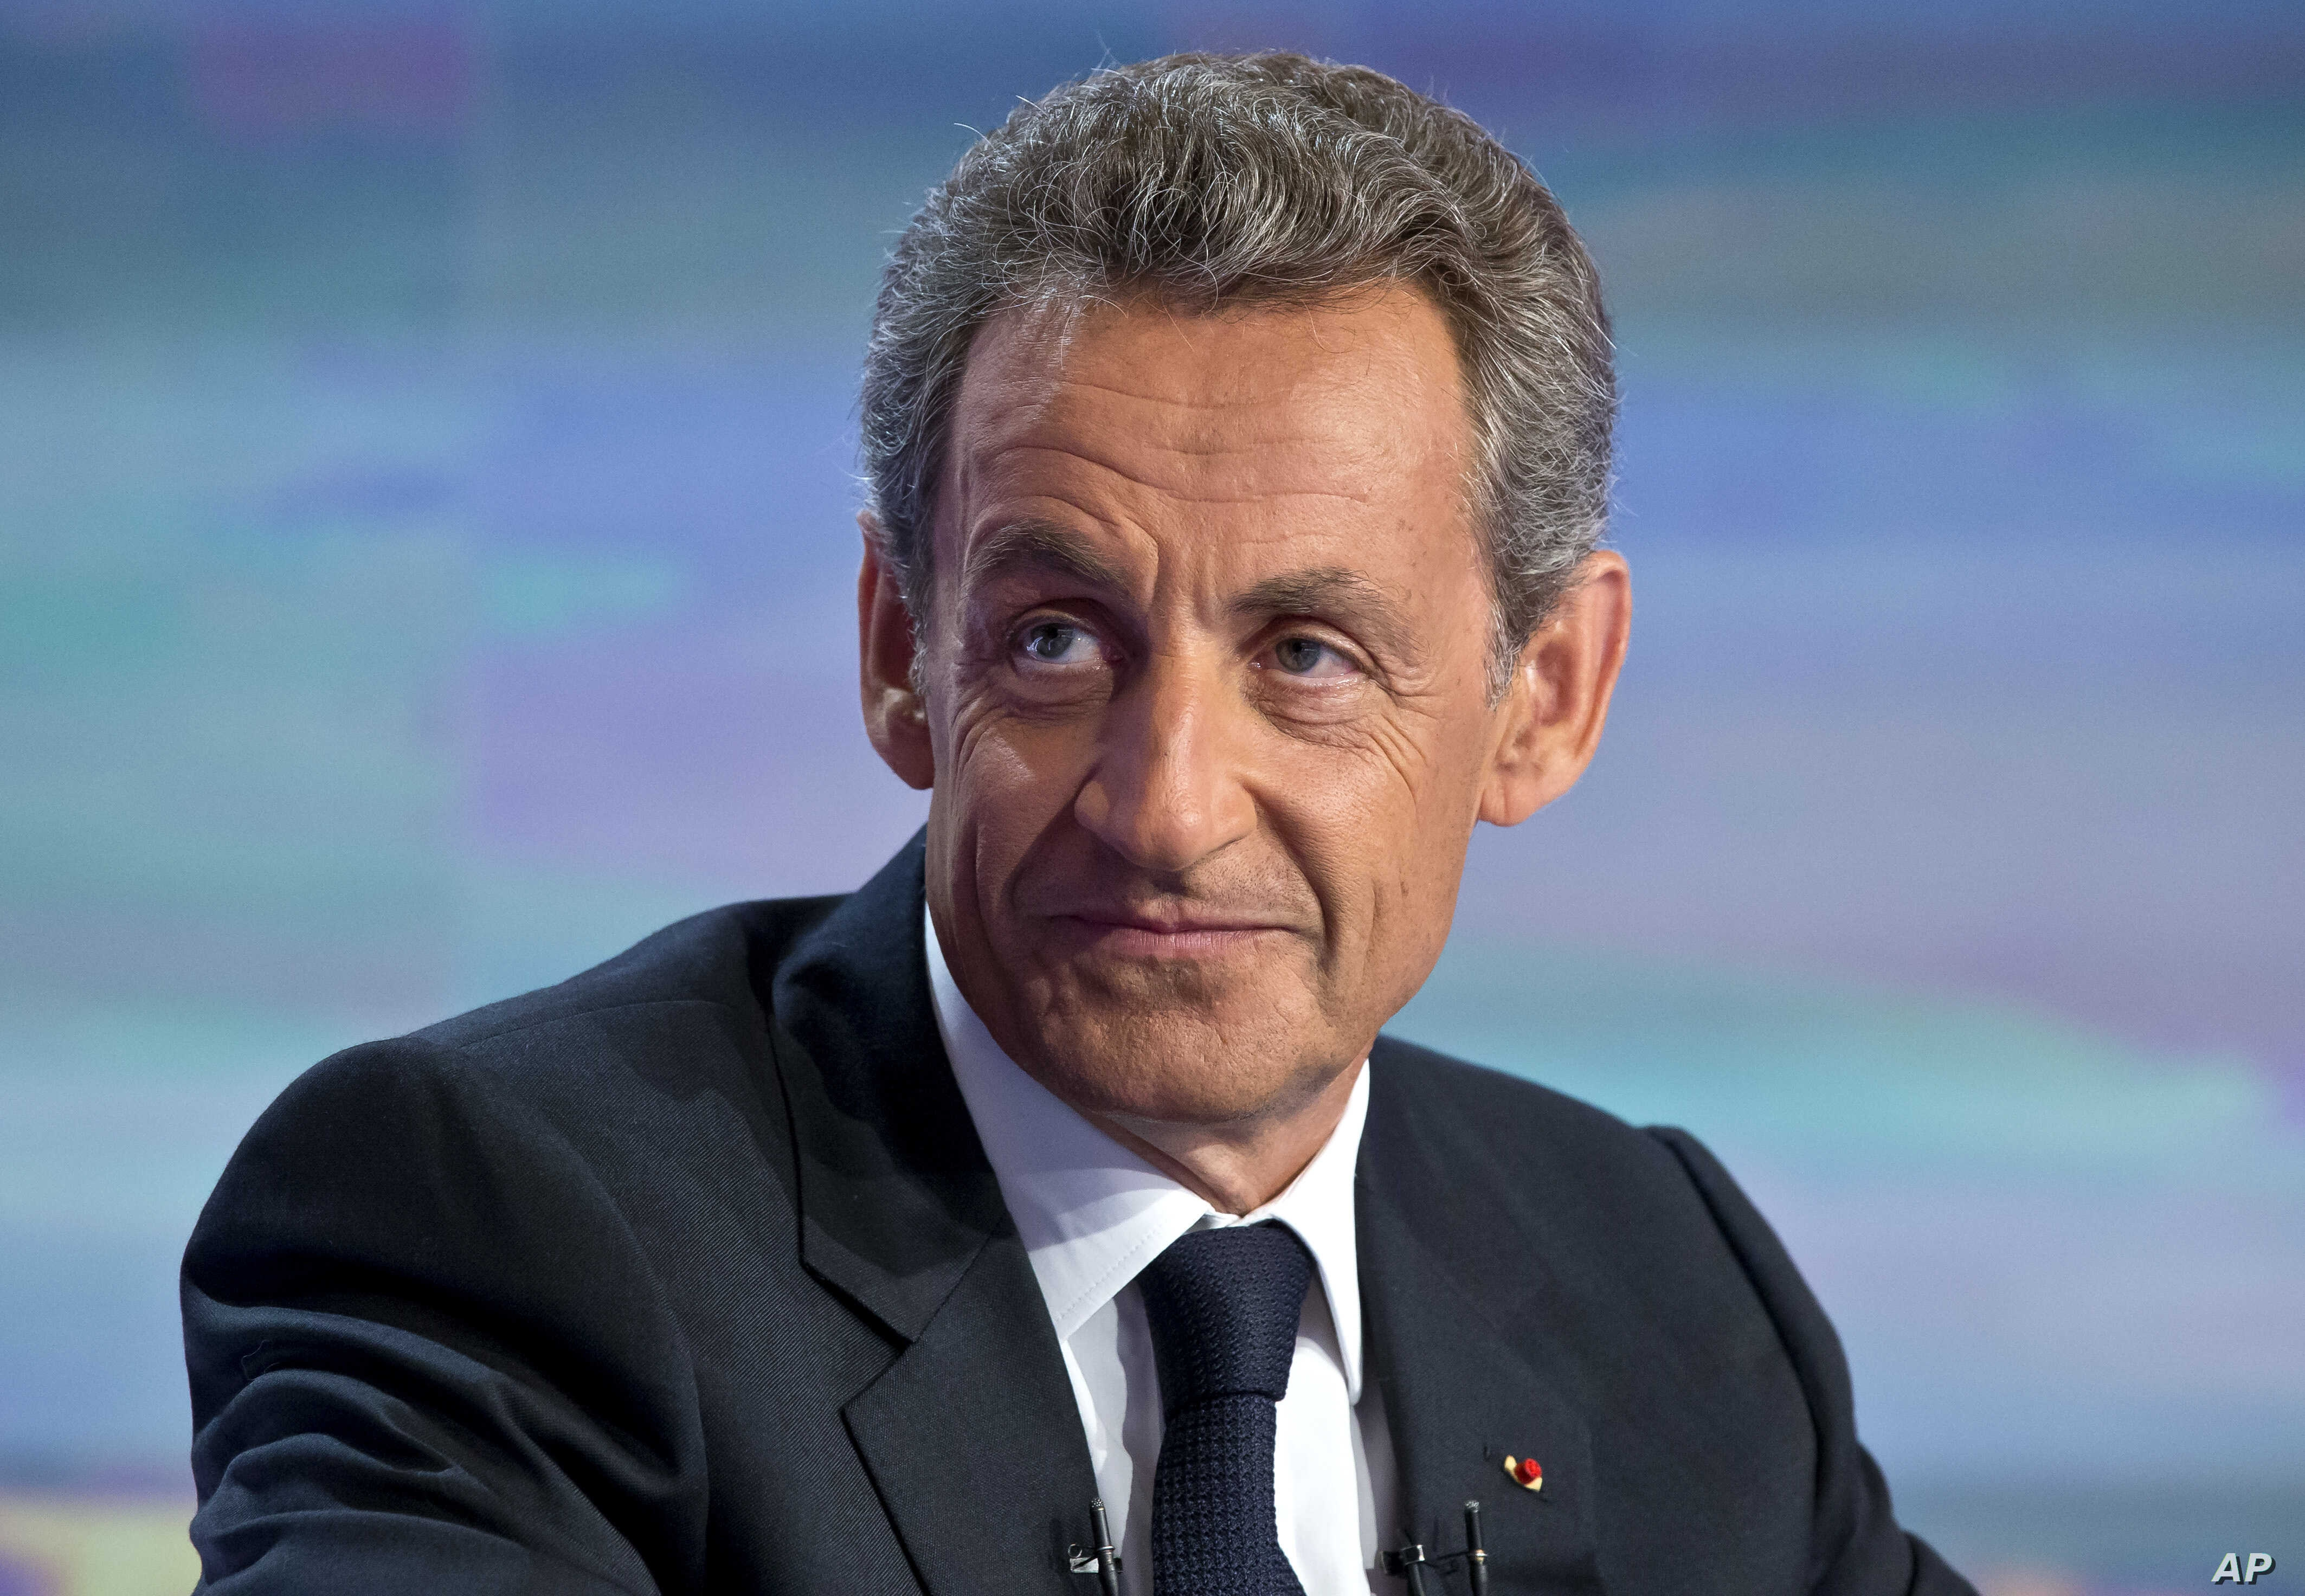 Former French president Sarkozy sentenced to jail for corruption